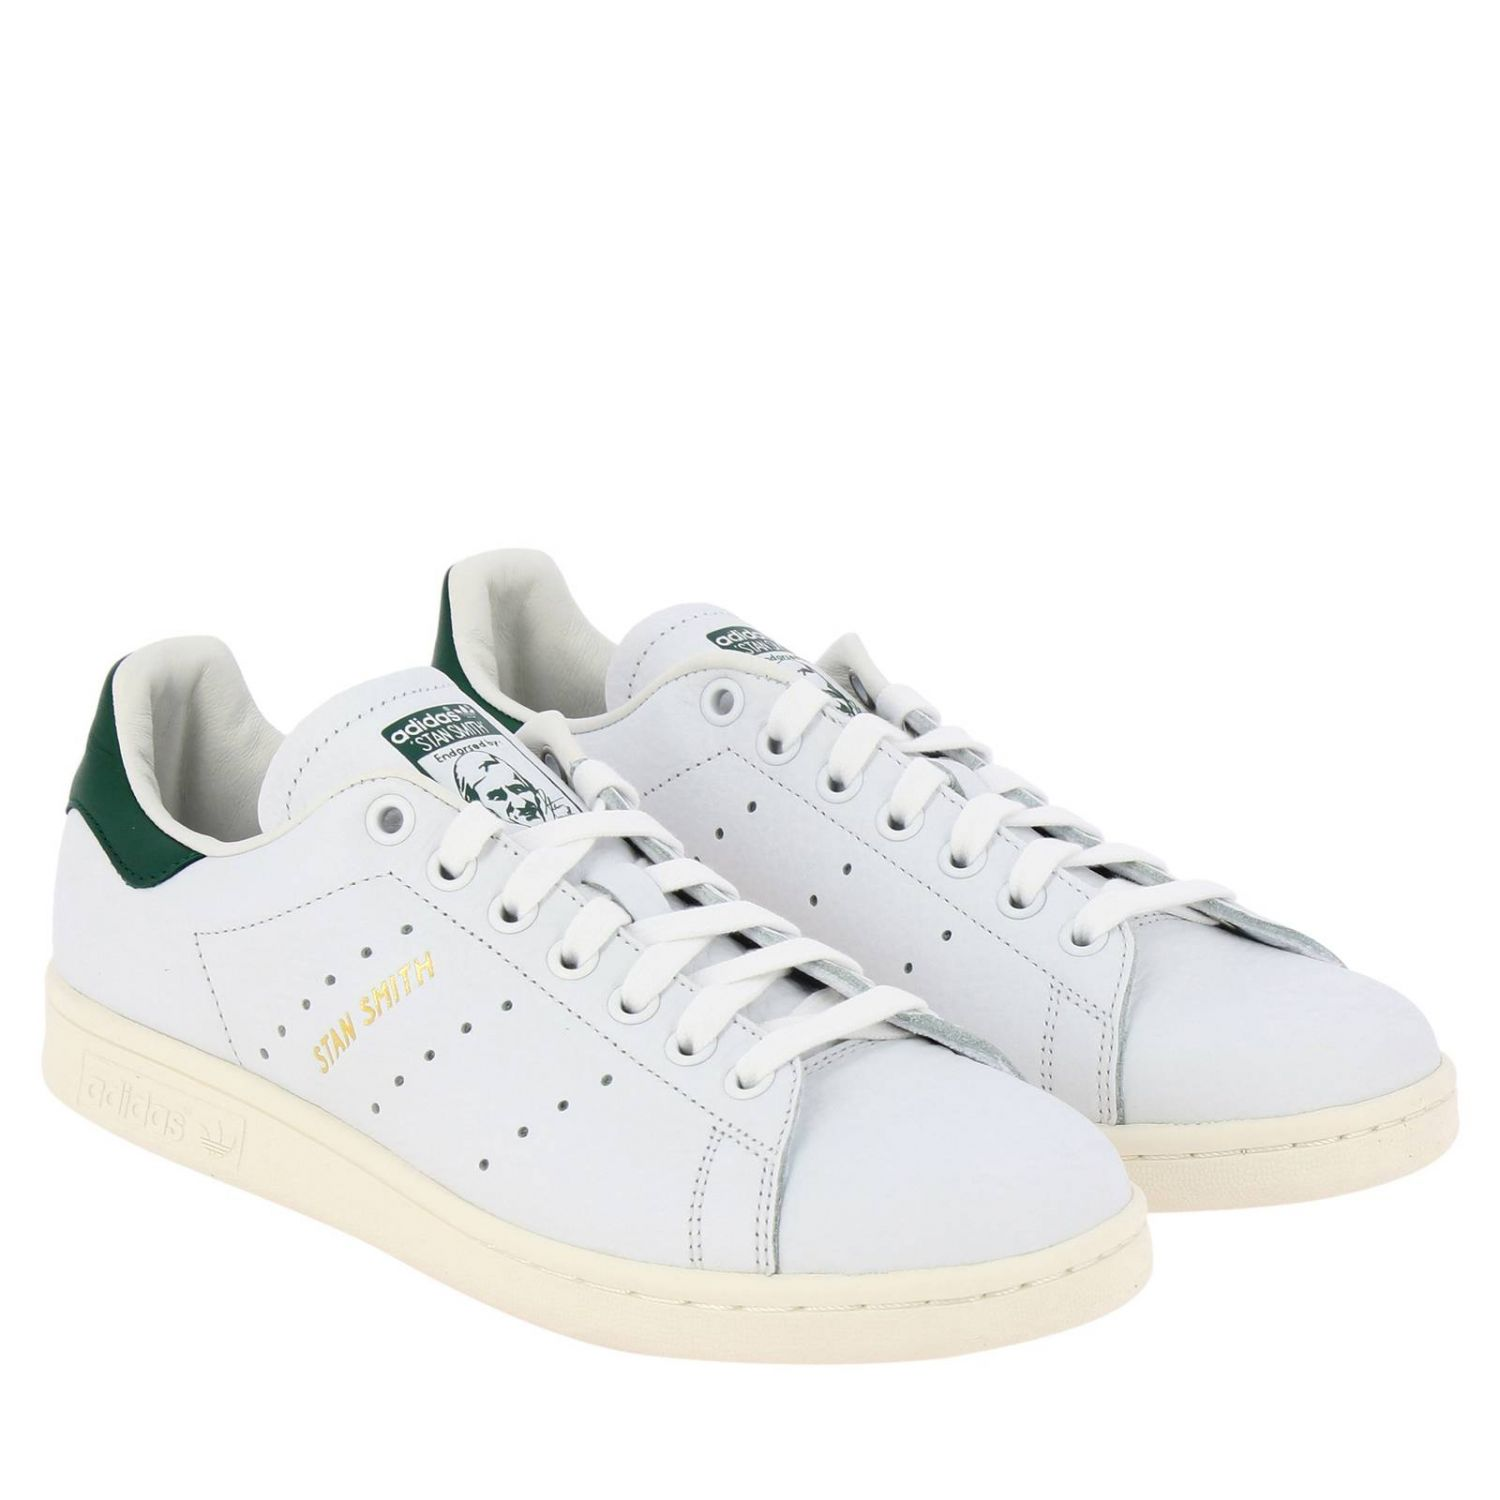 Sneakers Adidas Originals: Stan Smith Adidas Originals Sneakers in smooth leather white 2